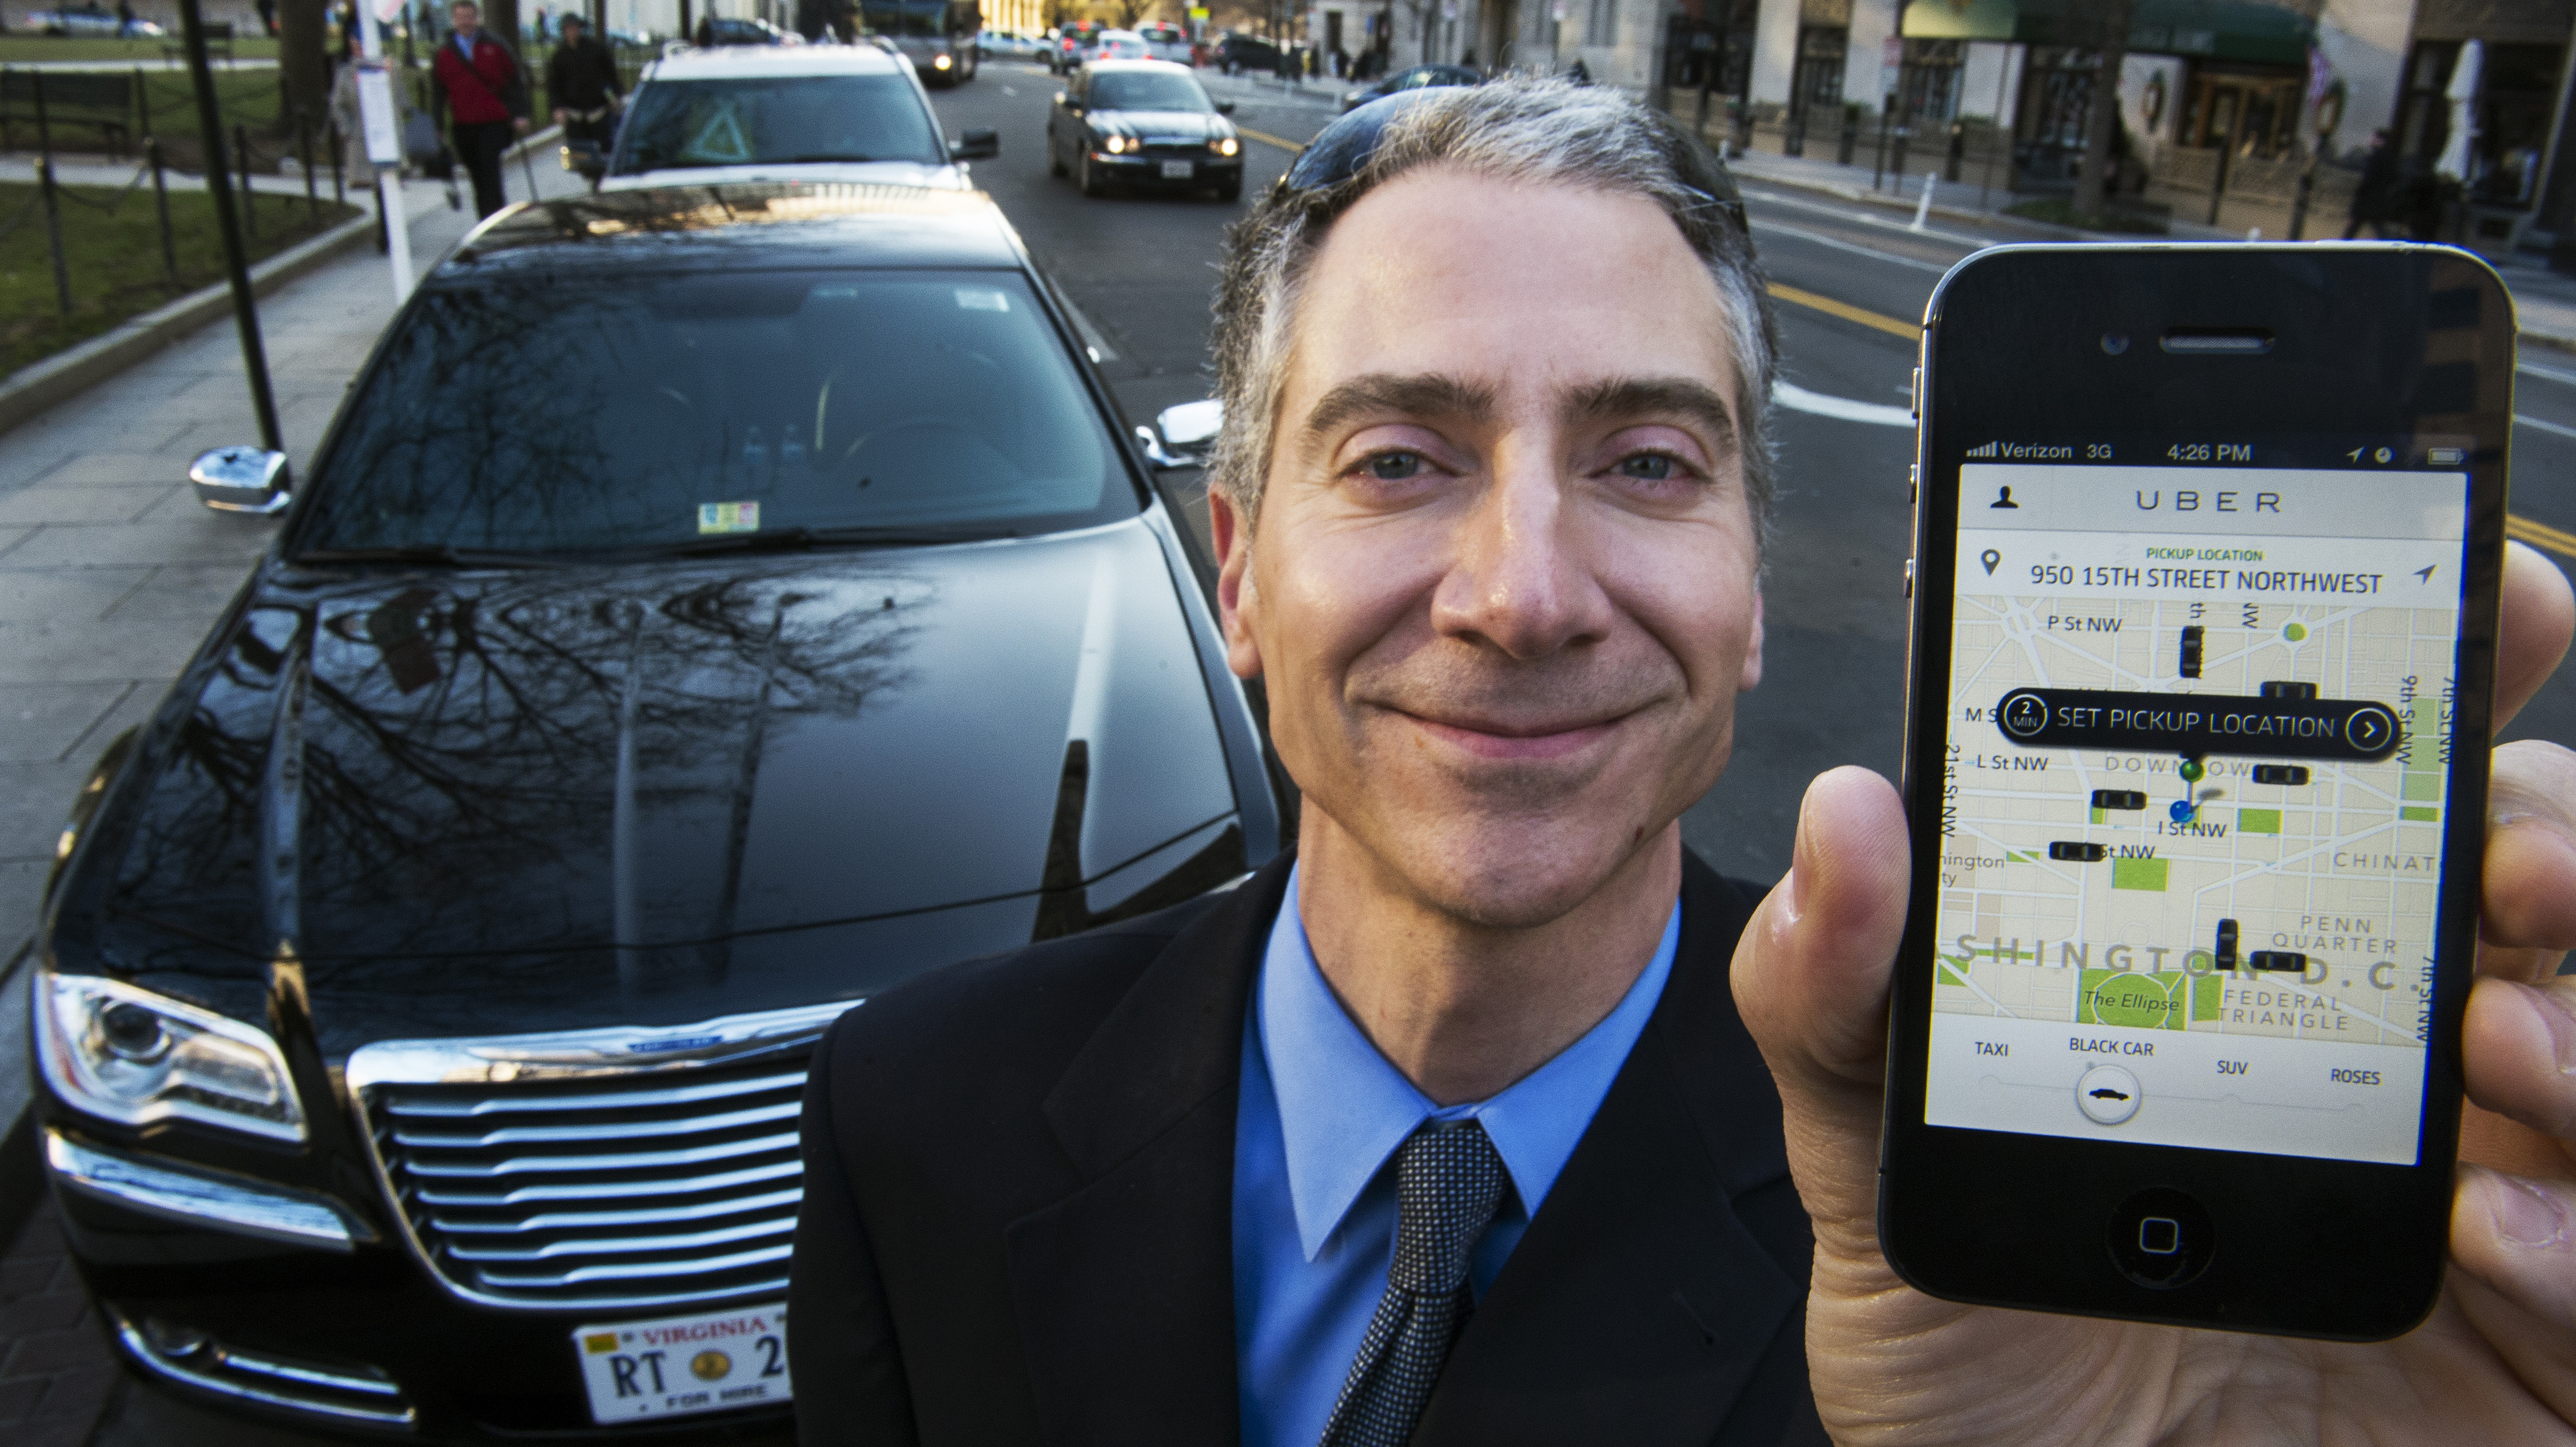 How To Be An Uber Driver >> Why Becoming An Uber Driver Shouldn T Be A Rash Decision